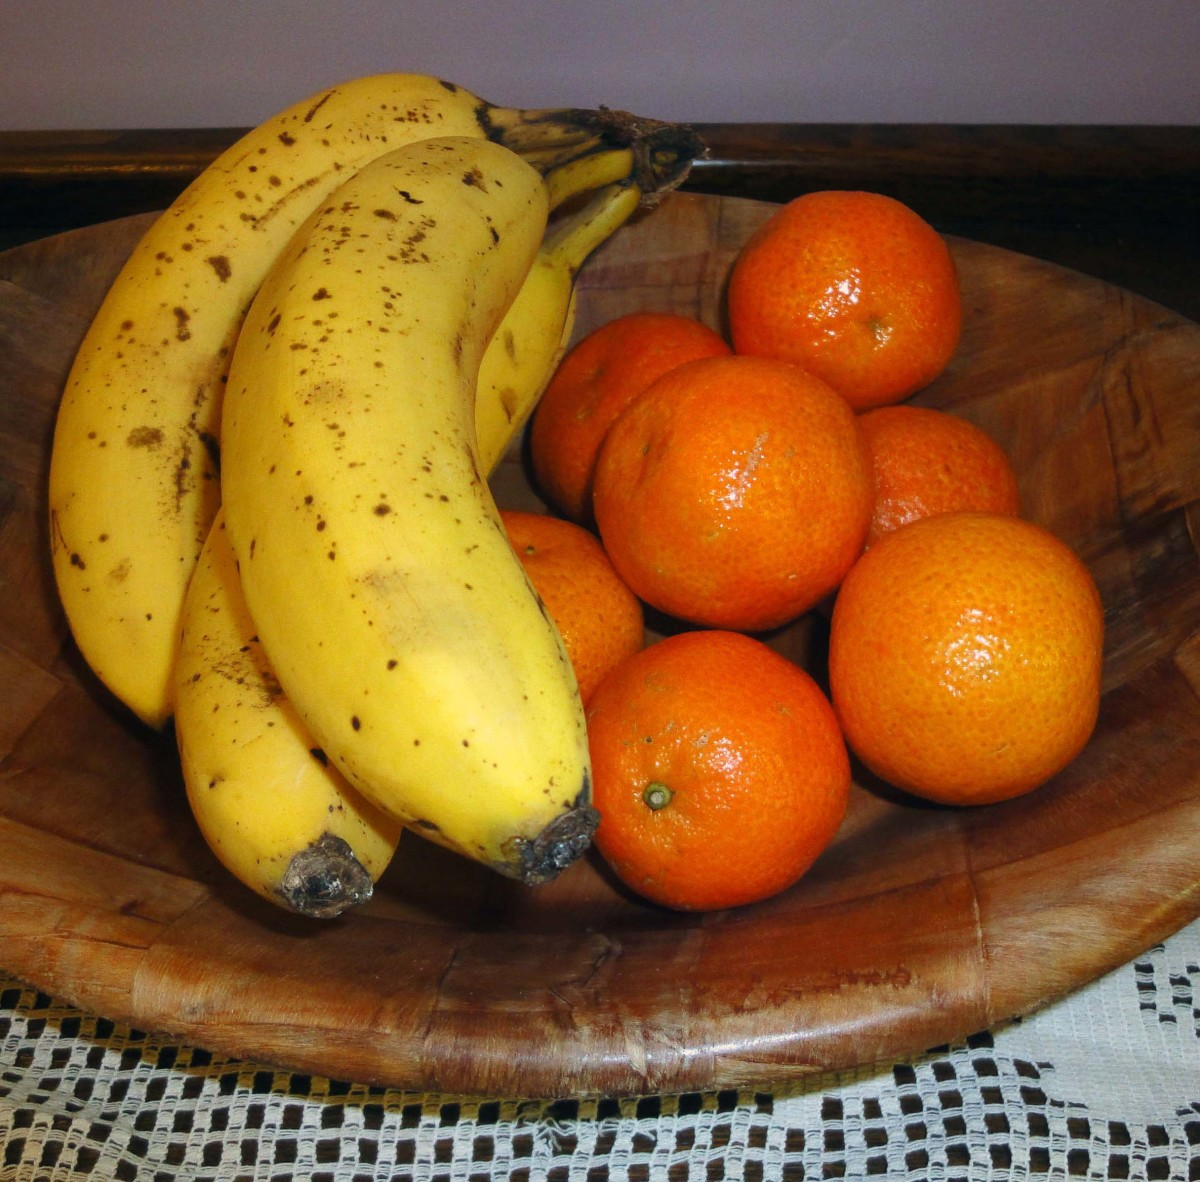 Plaited wooden with oranges and bananas